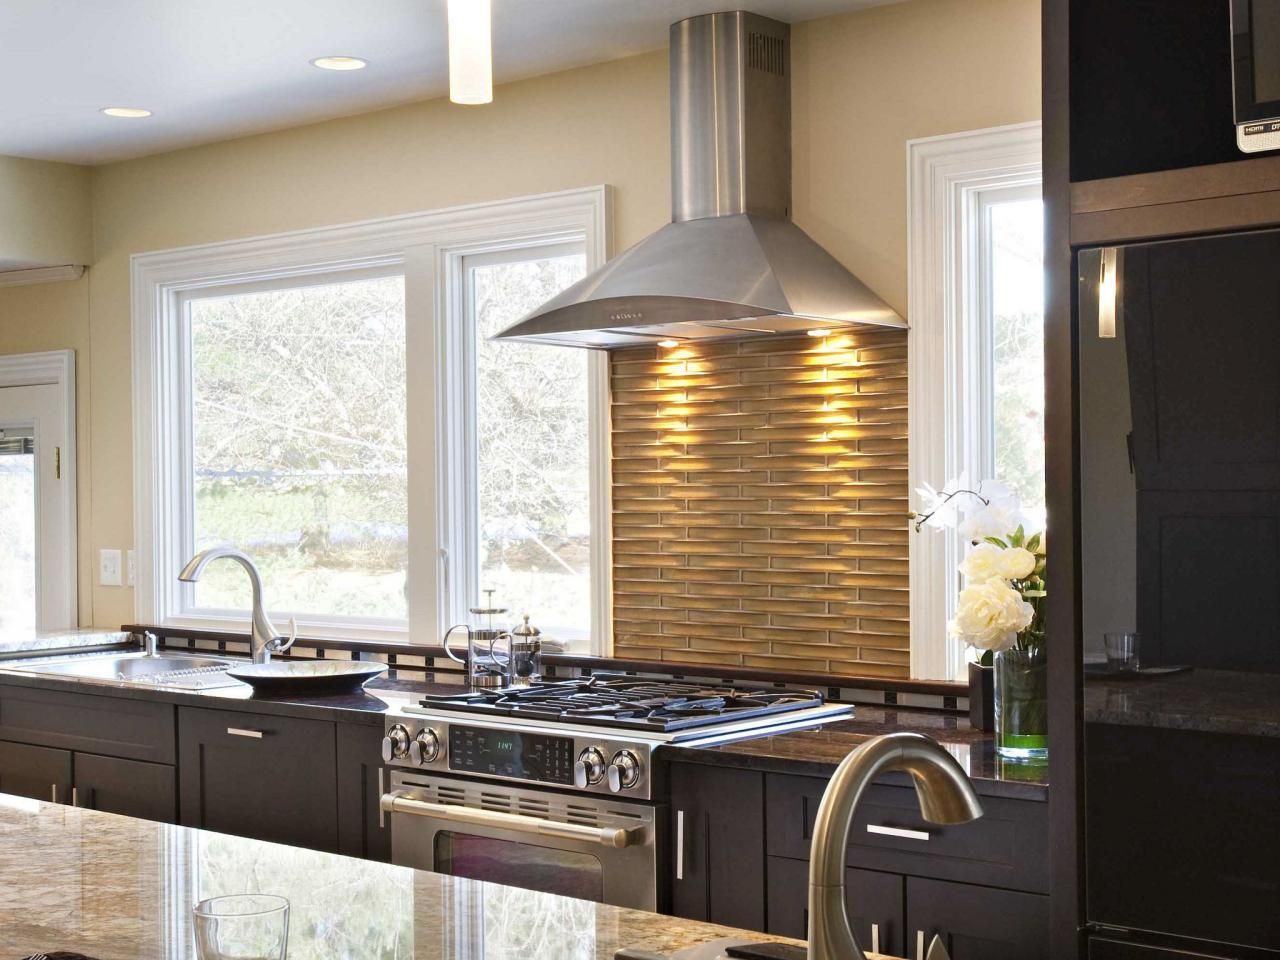 Basketweave Backsplash The Backsplash Should Be One Of The Main Focuses  When Remodeling Your Kitchen. HGTV Fan Cc_insidearch Used Curved Glass Tile  For A ...